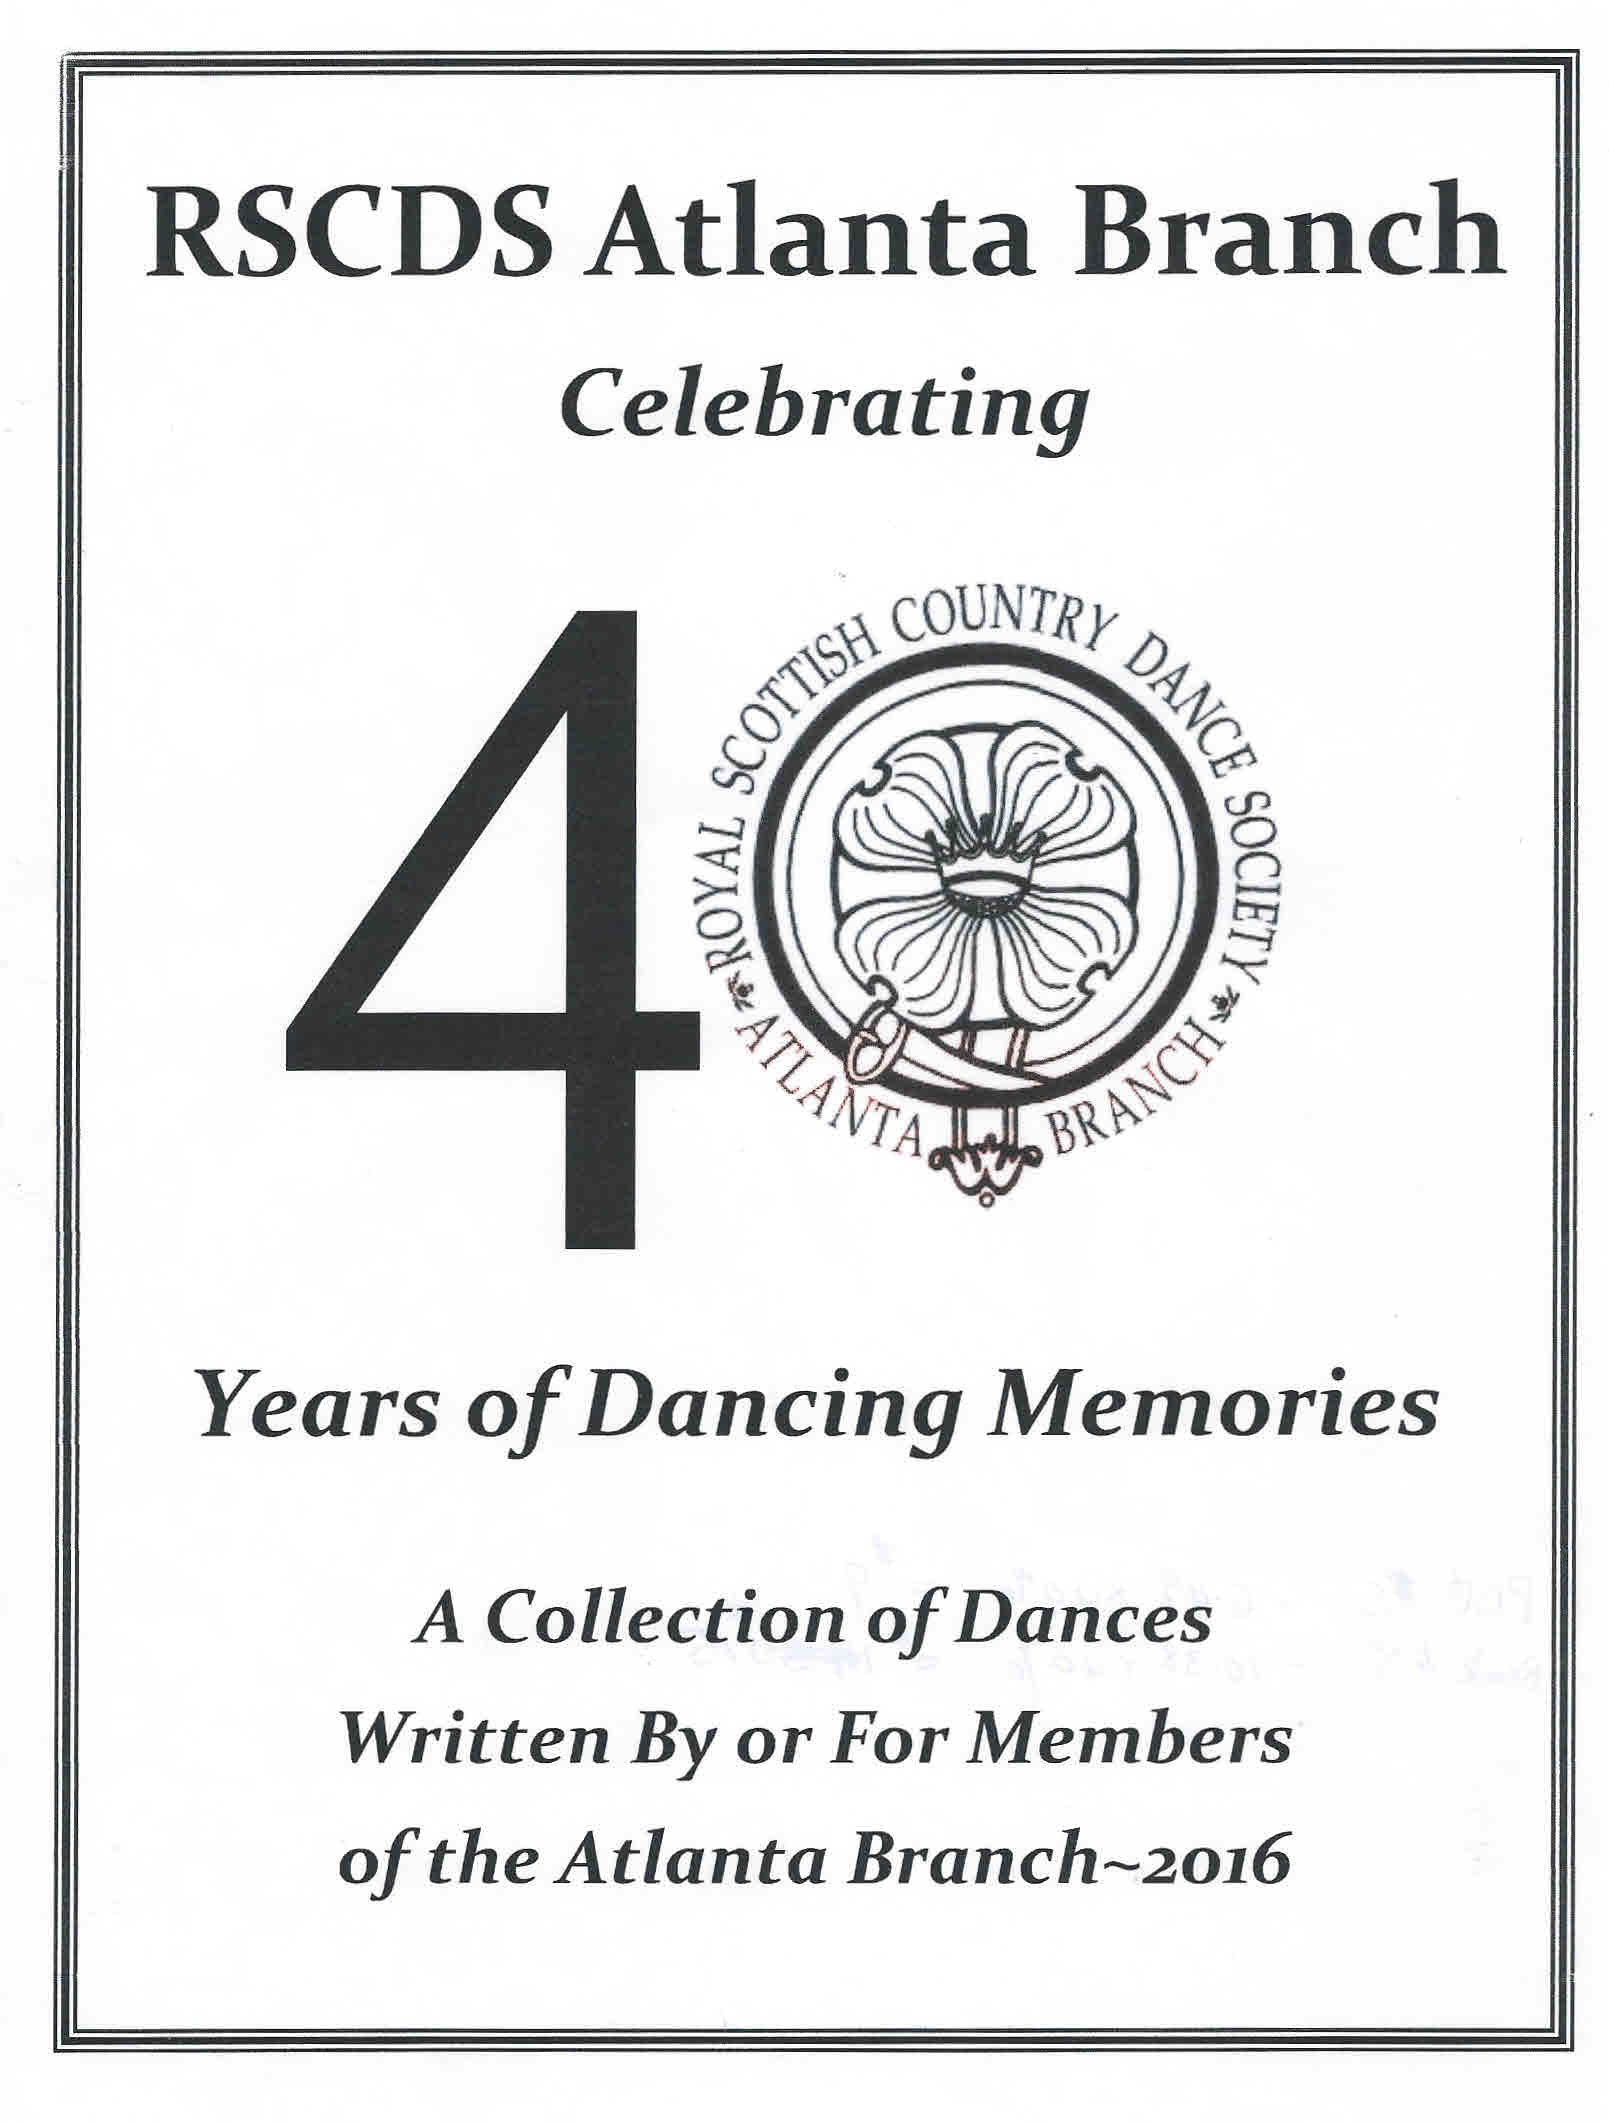 RSCDS Atlanta Branch -Celebrating 40 Year of Dancing Memories